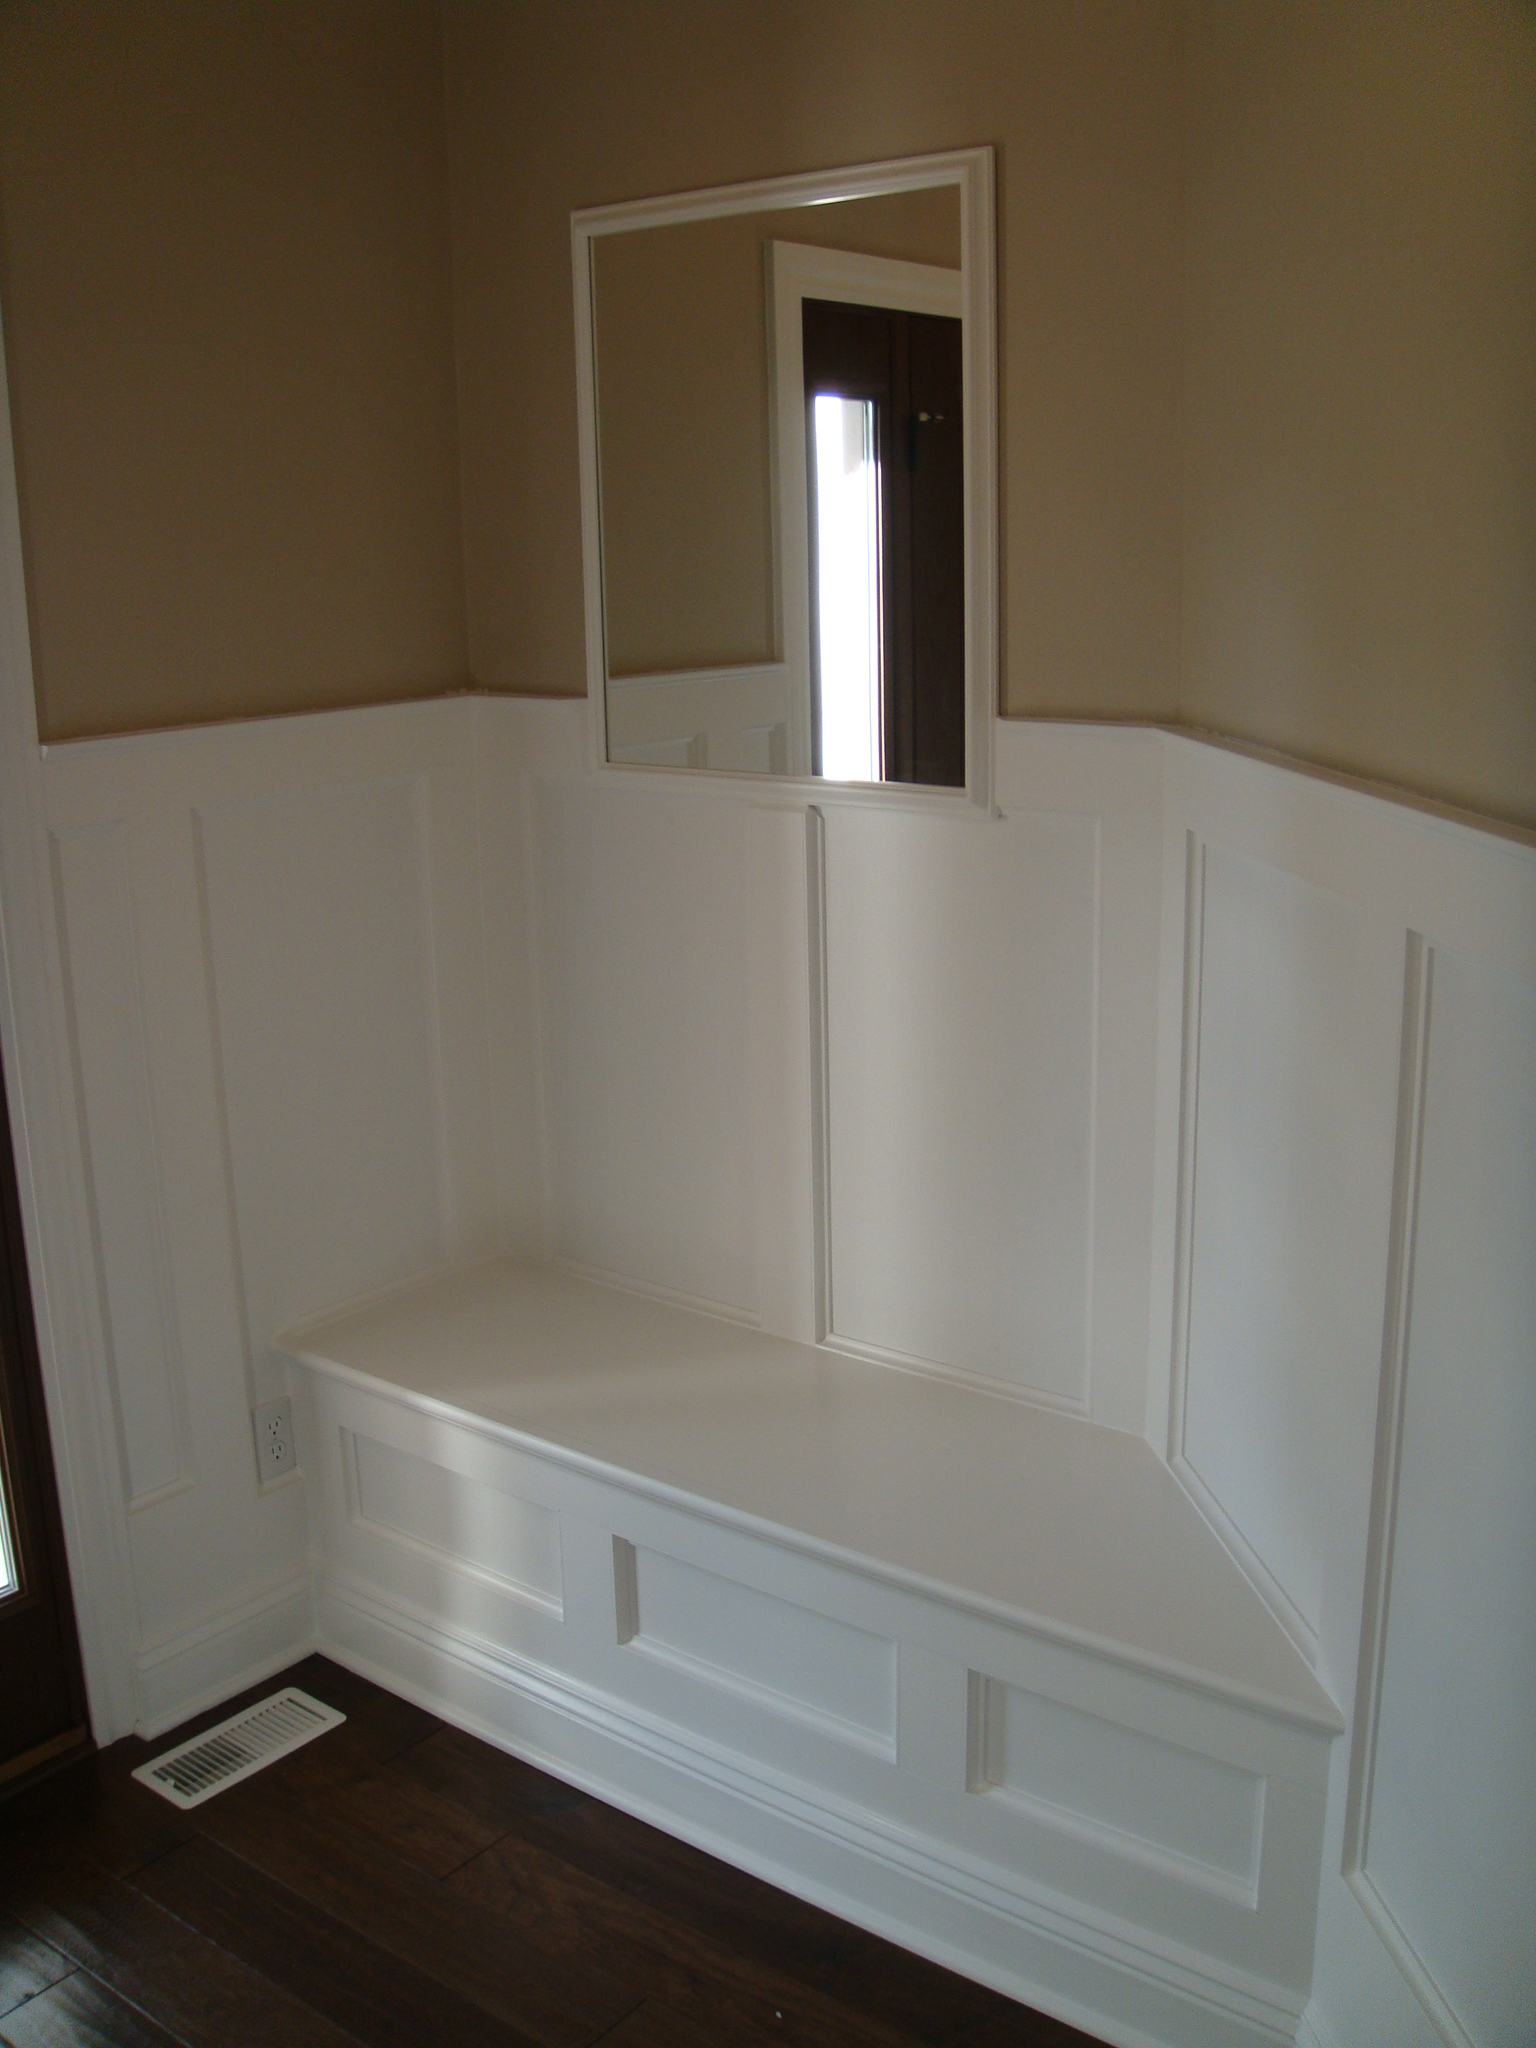 Ana White Angled Wall Built In Bench DIY Projects